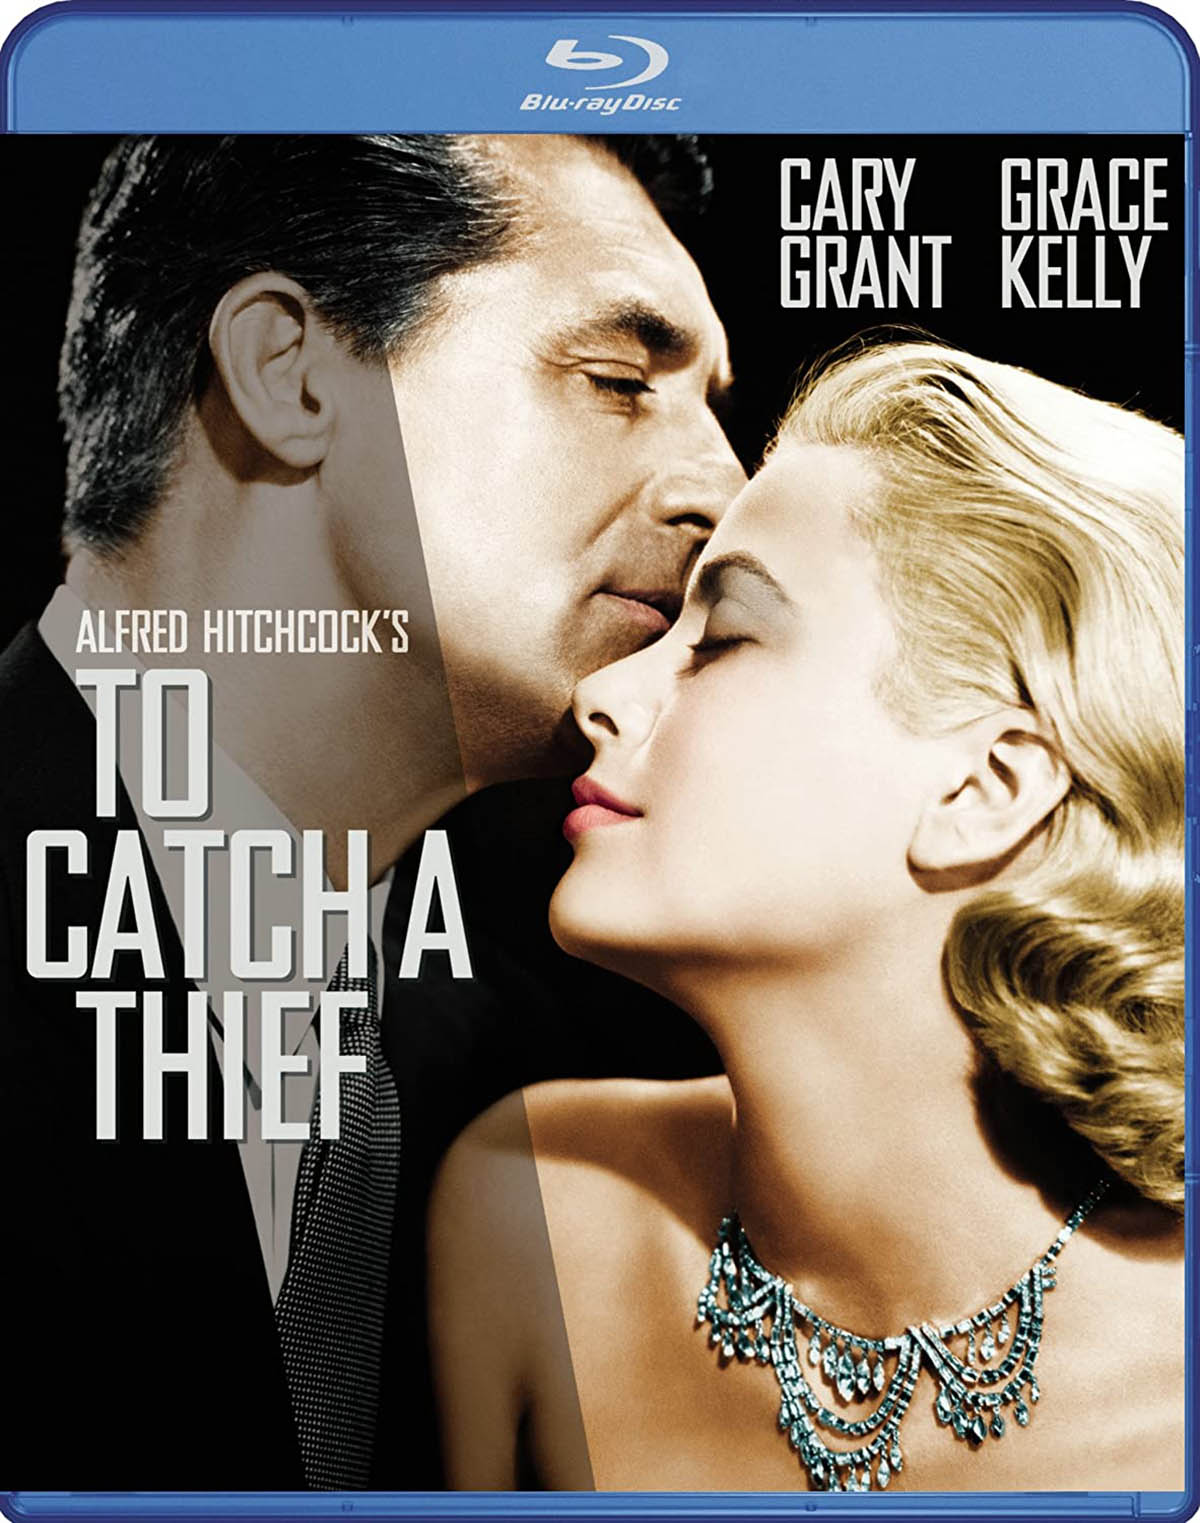 American Restoration Kelly Nude blu-ray review: to catch a thief - slant magazine